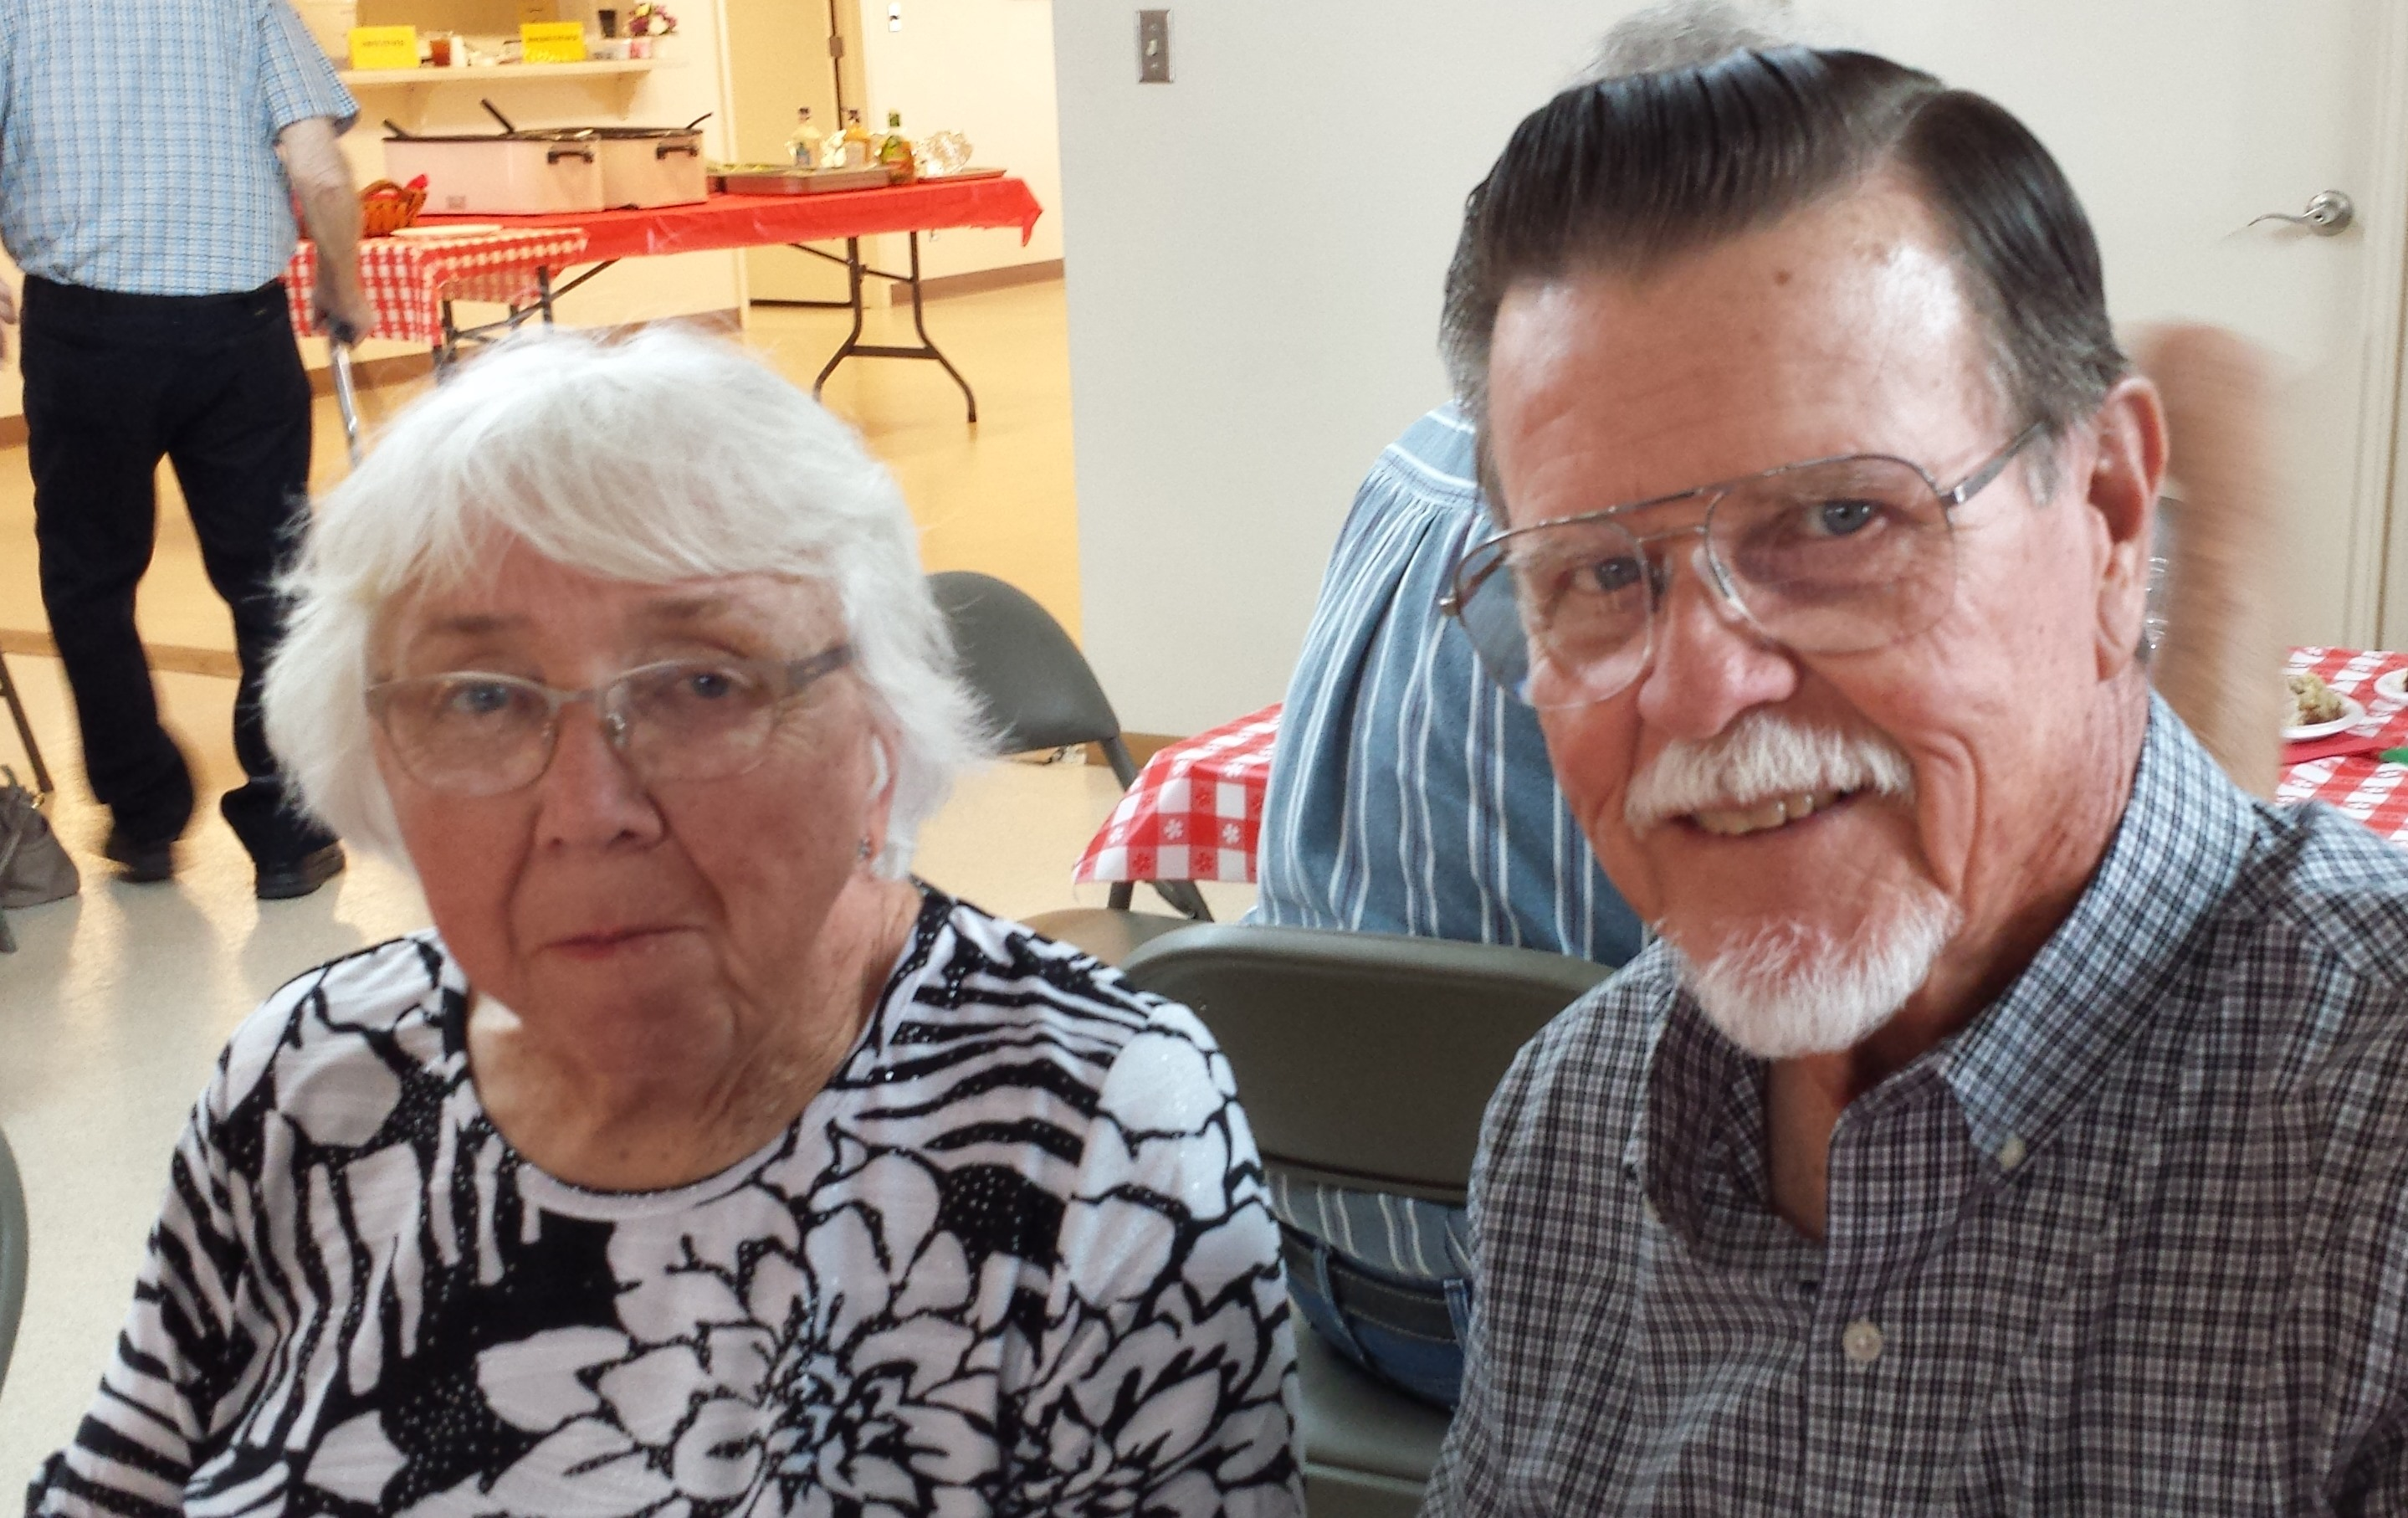 Joy and Melvin married 58 years